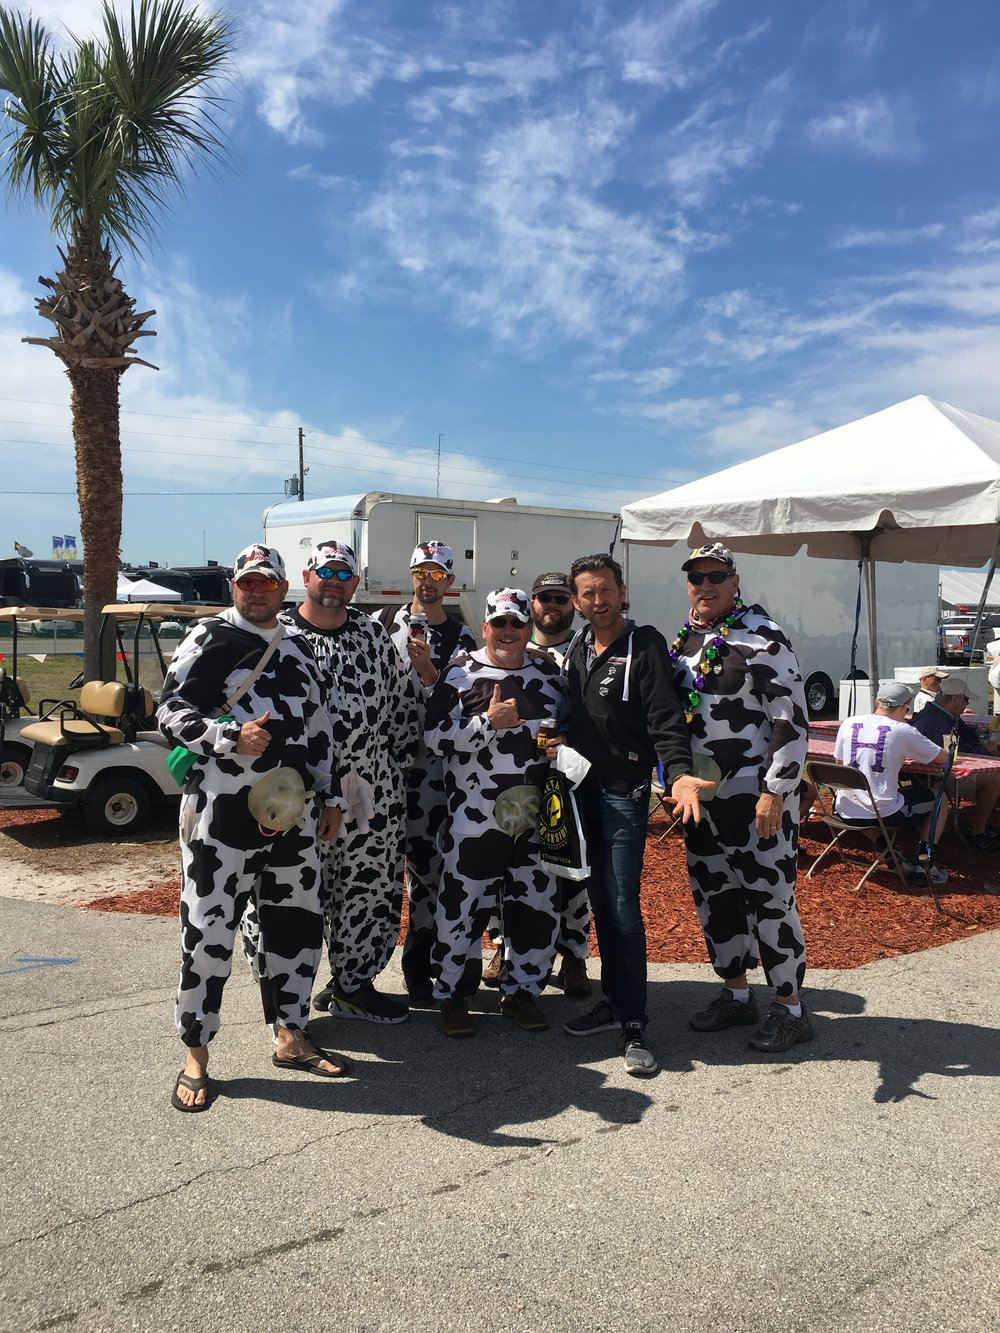 Not long after I had my annual reunion with the 'Cows' that always make an appearance at Sebring (they are apparently sensible intelligent and successful people outside of this weekend). So they tell me.